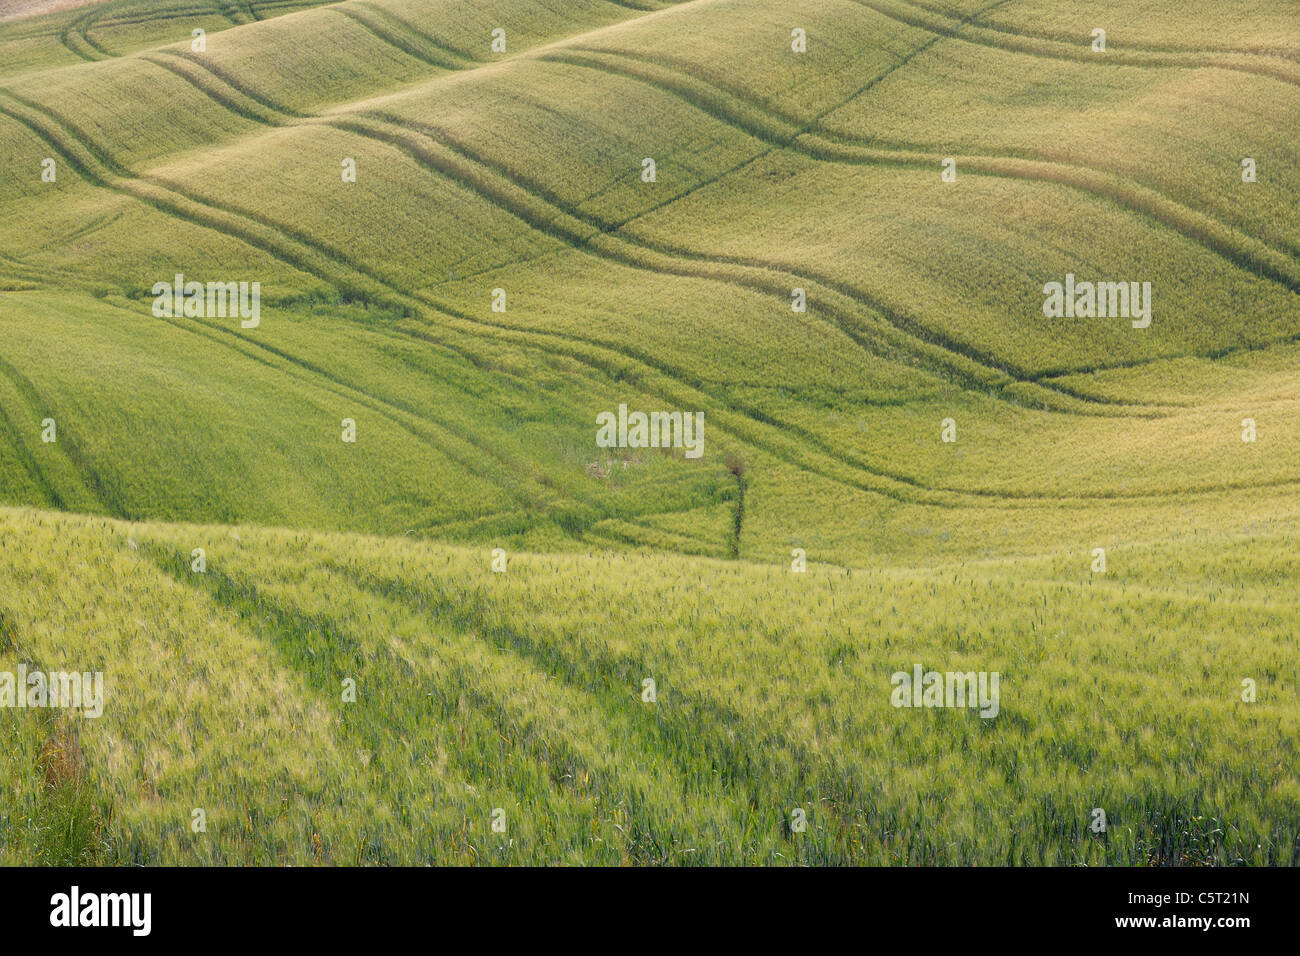 Italy, Tuscany, Province of Siena, Val d'Orcia, Pienza, View of green wheat field with tyre tracks - Stock Image